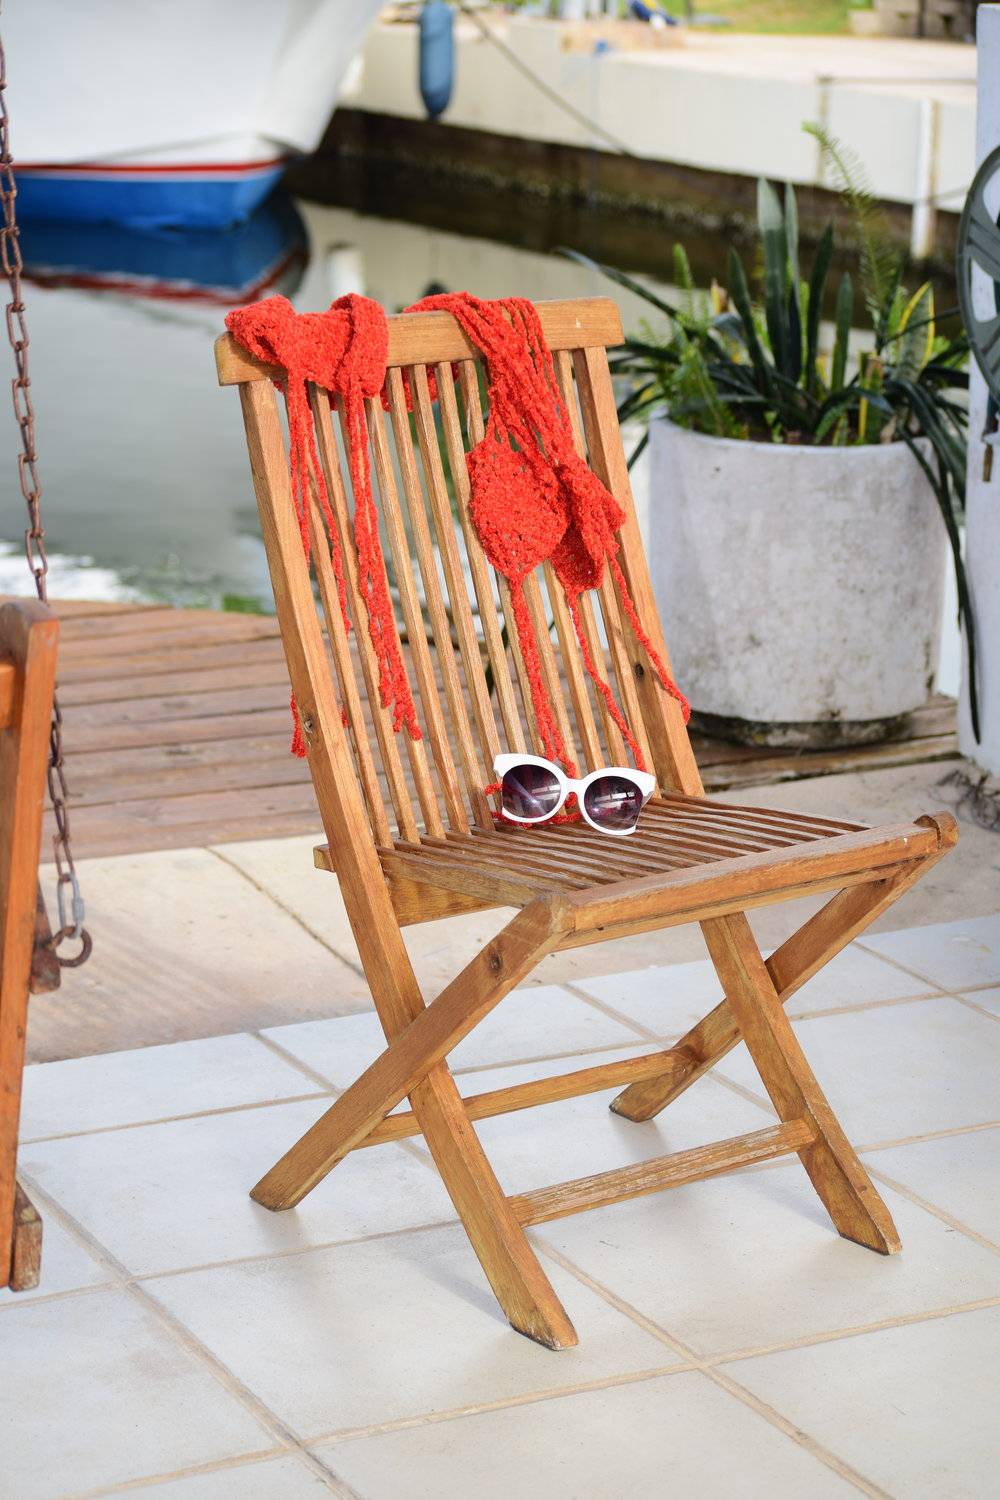 MSW-redmonokini-chair-glasses.JPG